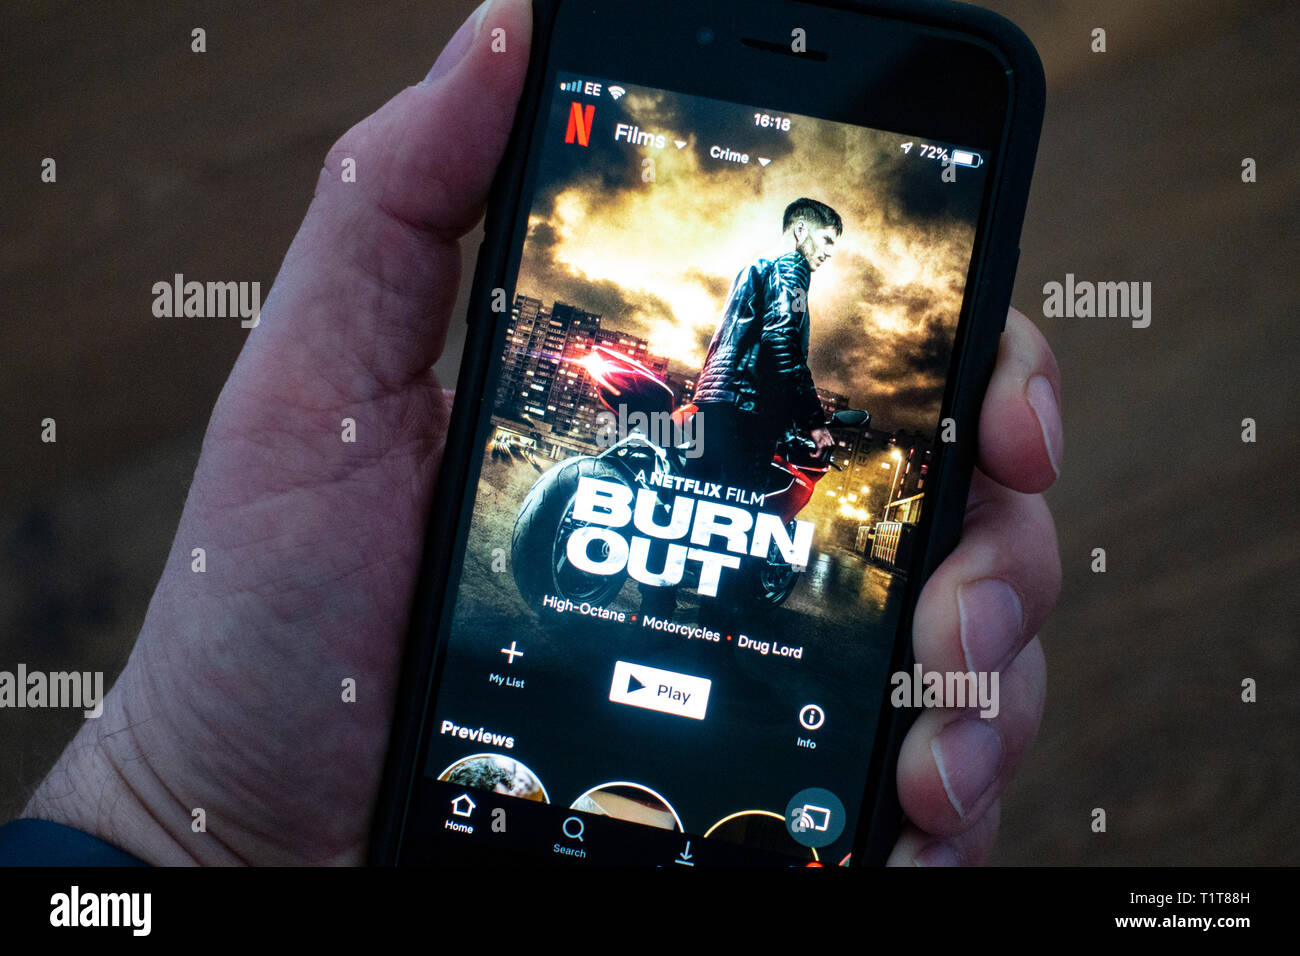 Using a mobile phone to browse Netflix movie streaming app Stock